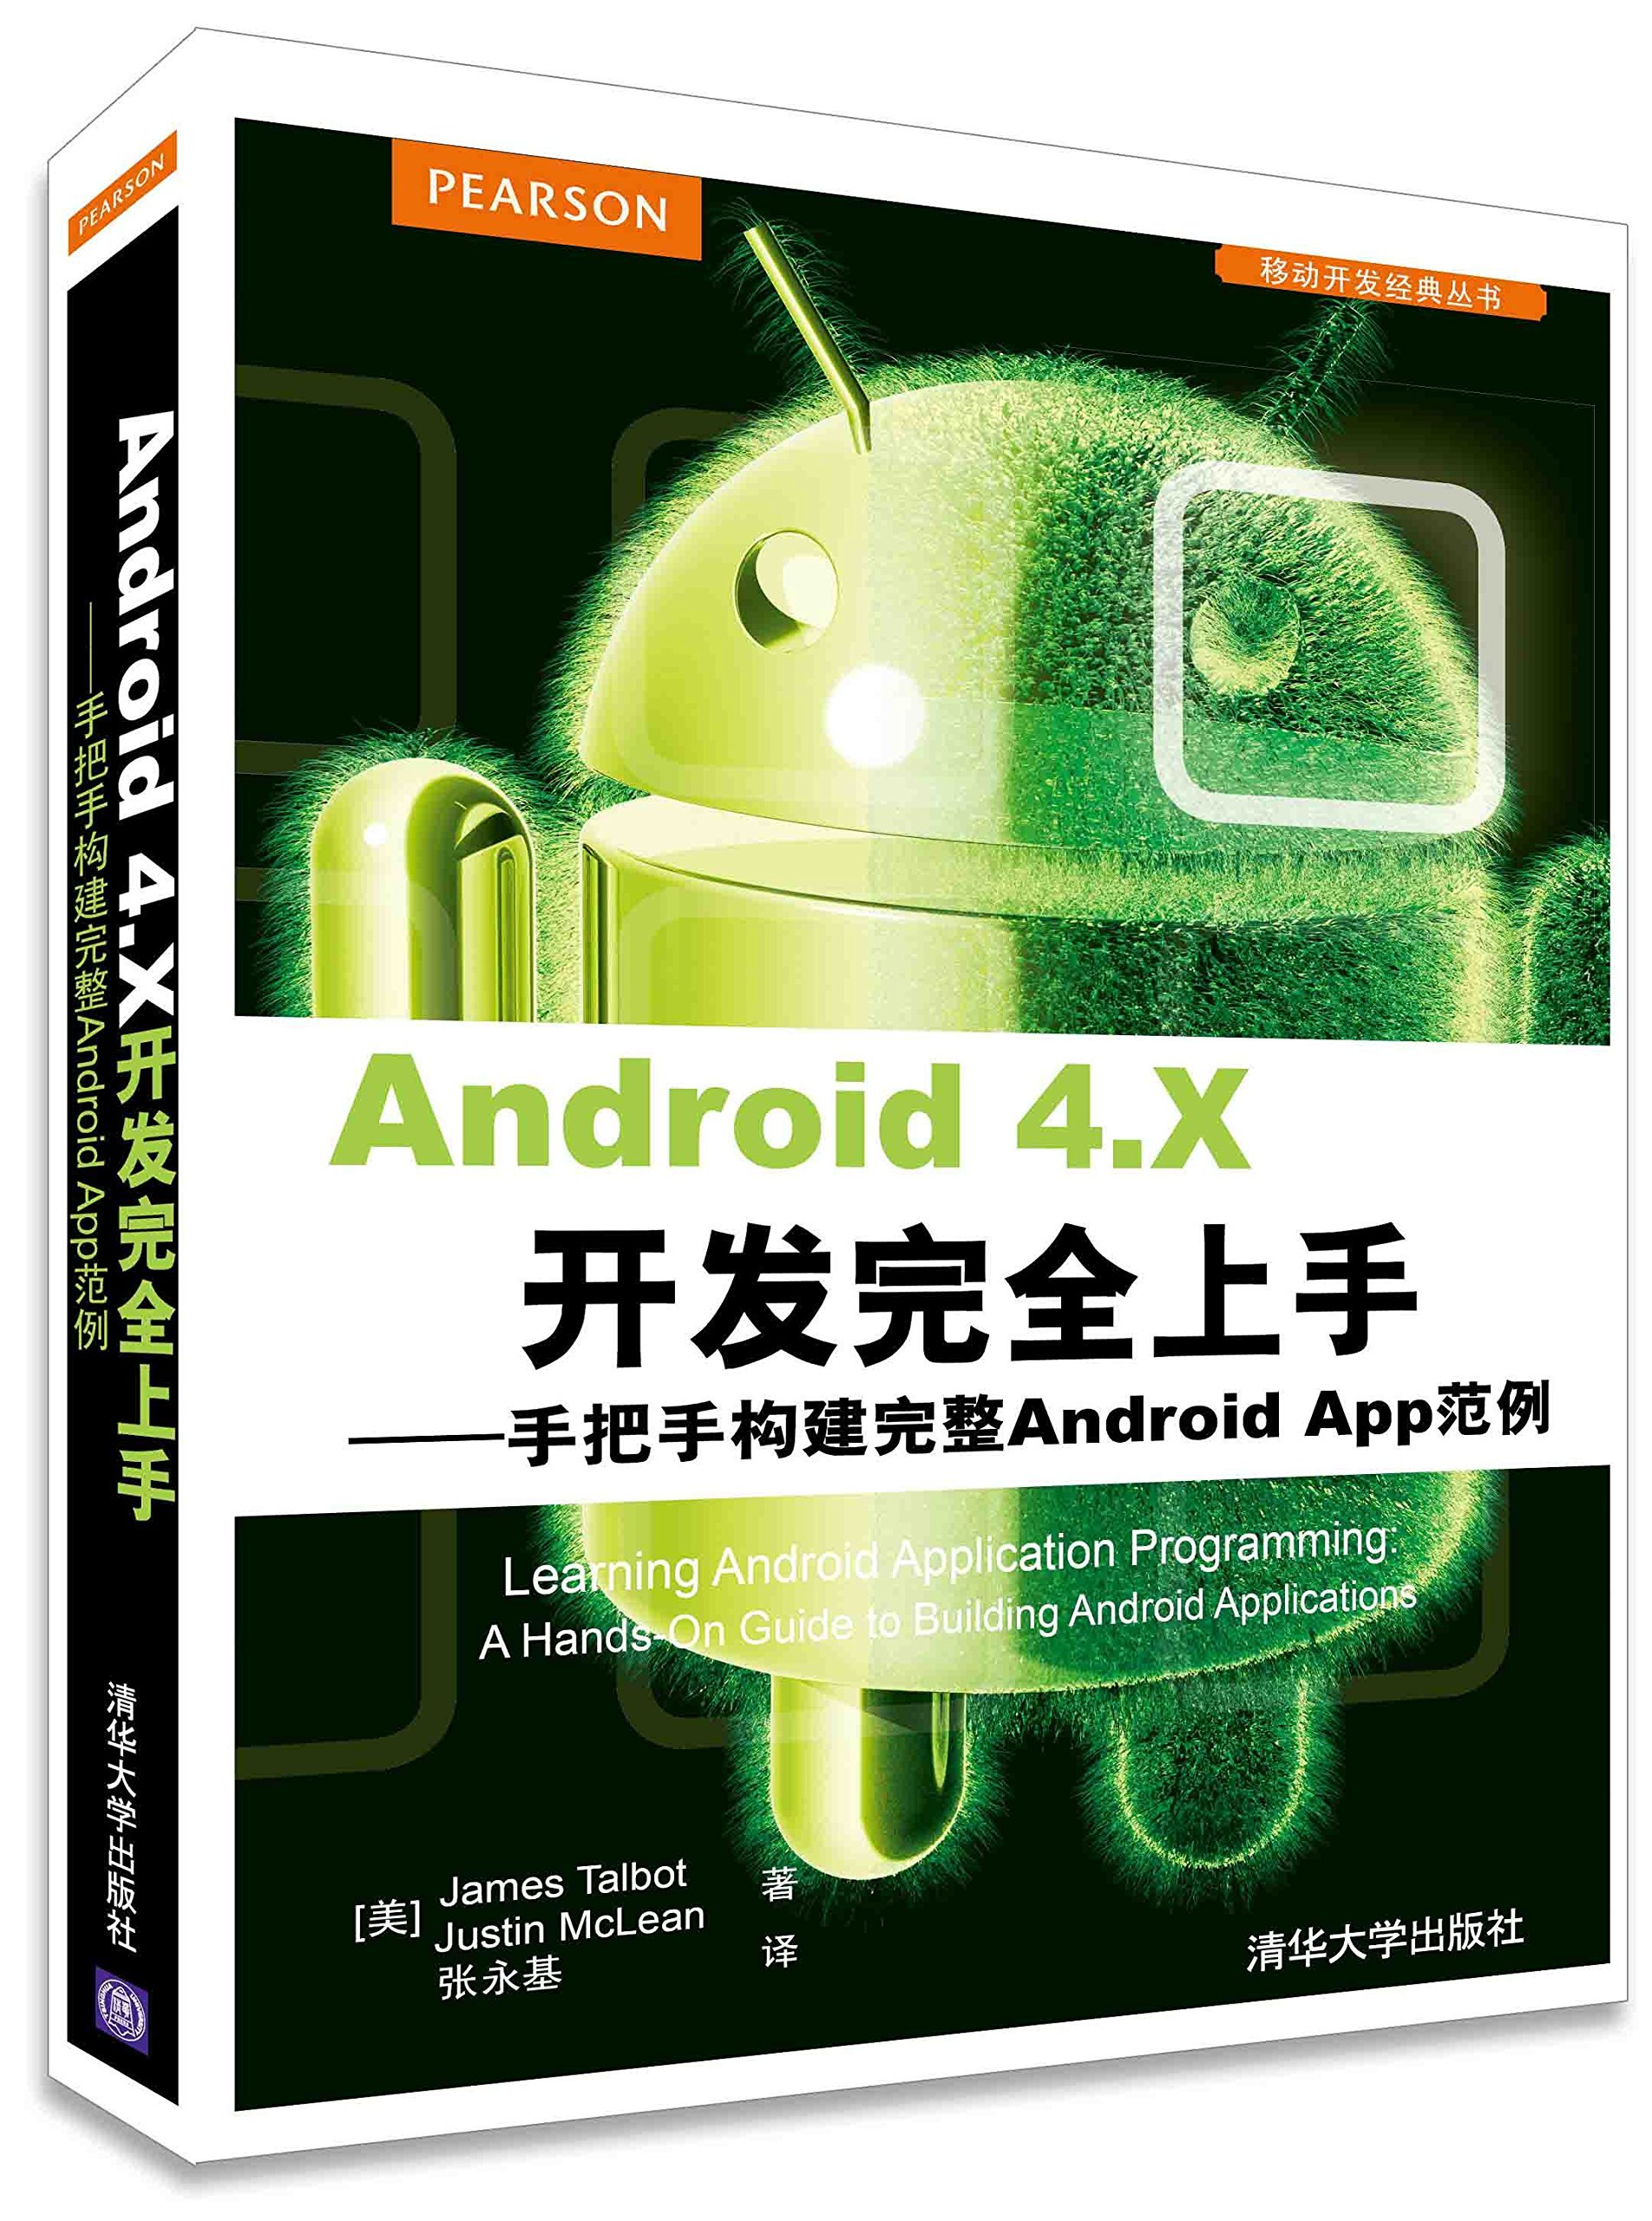 Download Android 4.X develop fully started: hands-on building a complete paradigm Android App(Chinese Edition) PDF